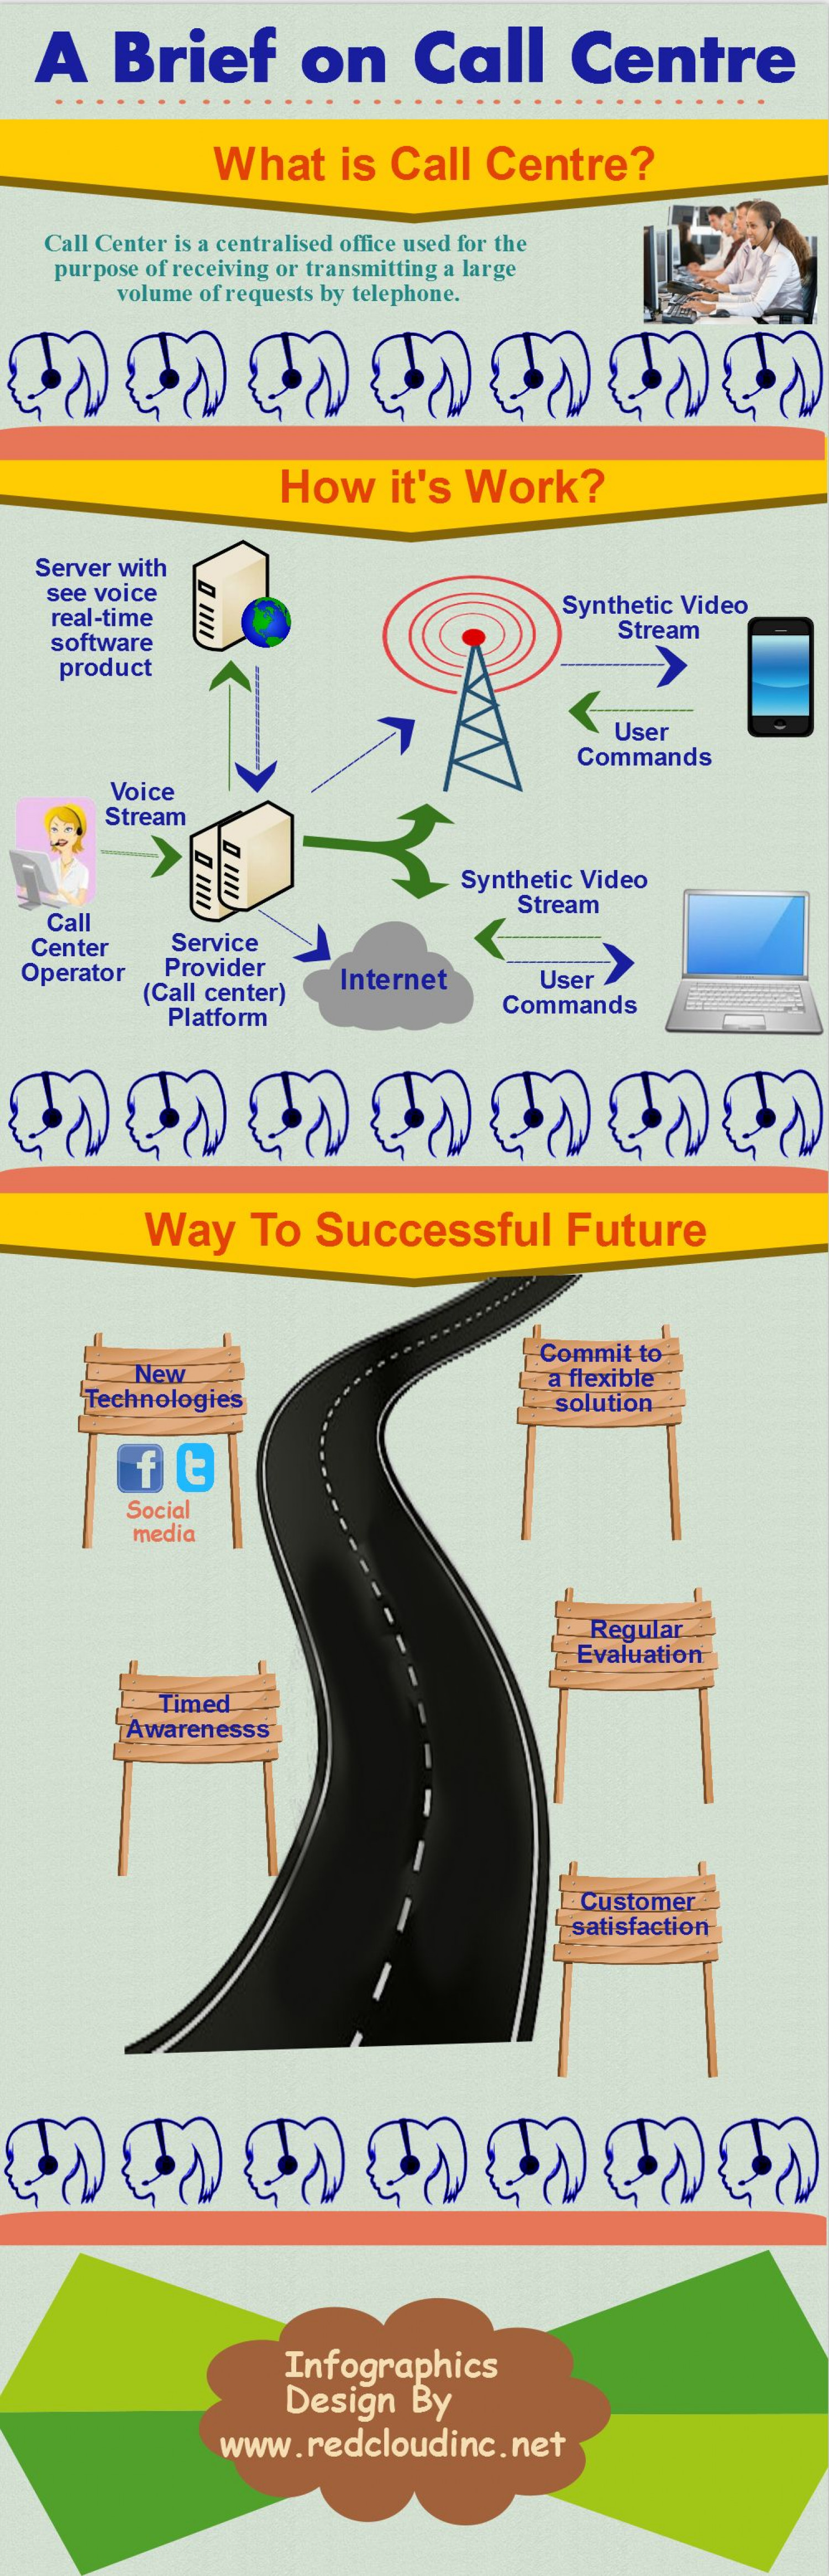 A Brief on Call Centre Infographic